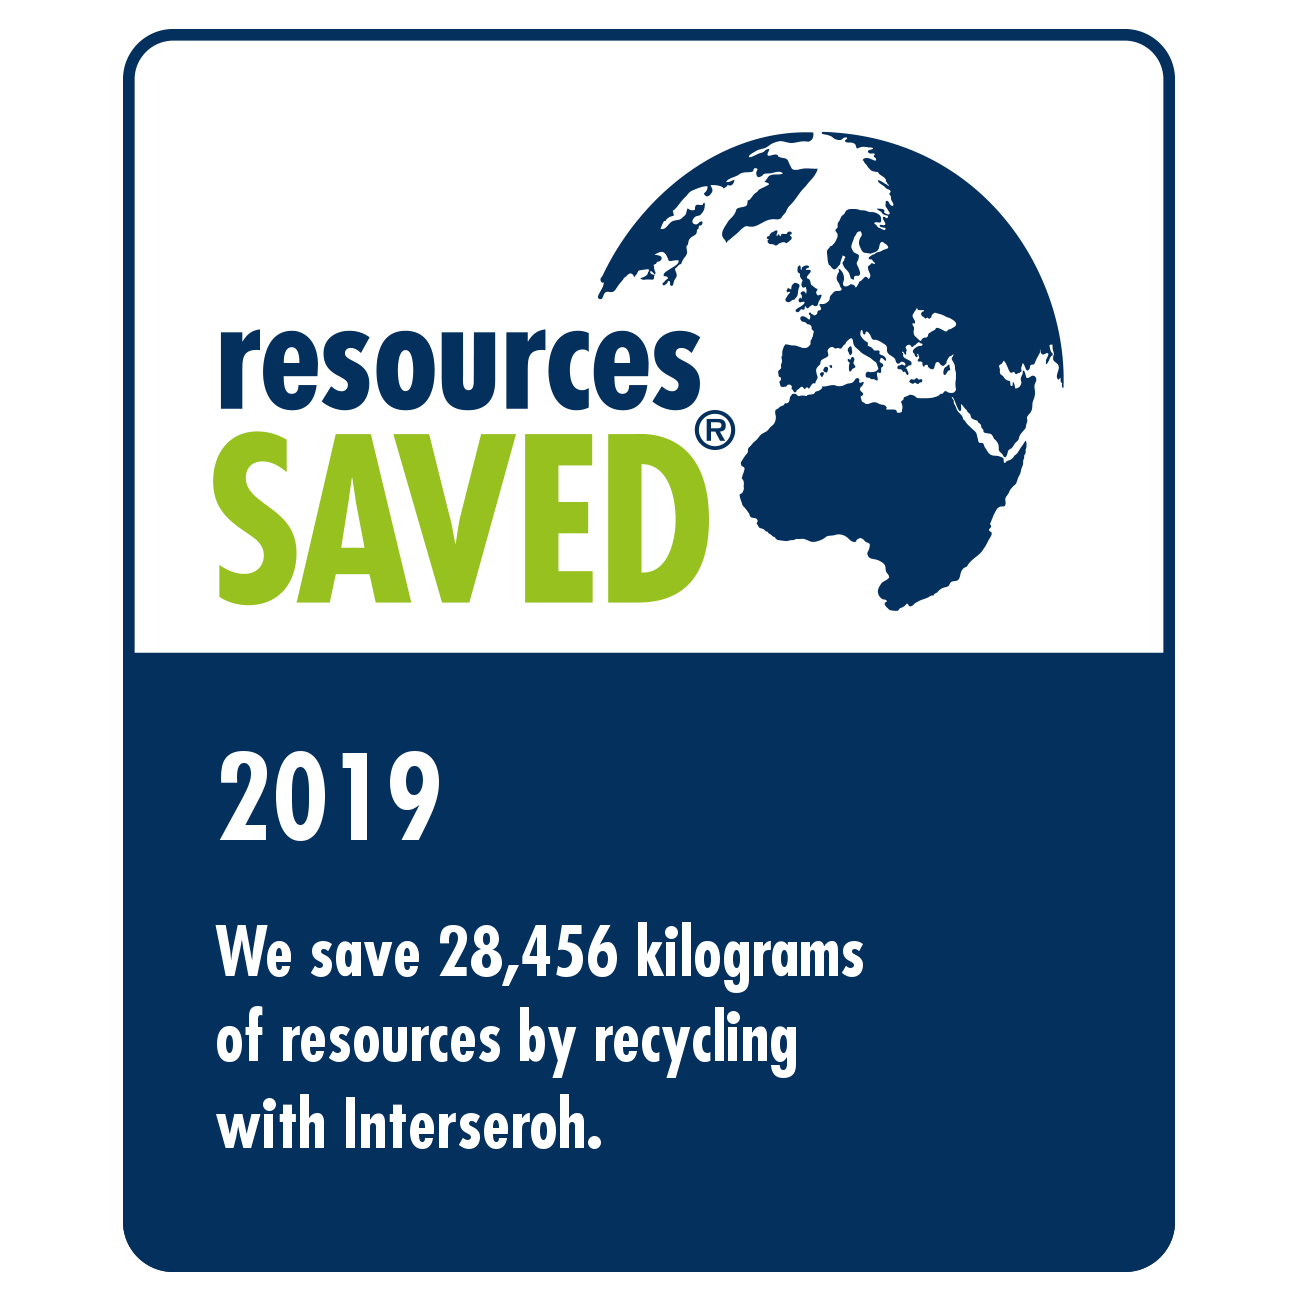 2019 - Saved resources by recycling